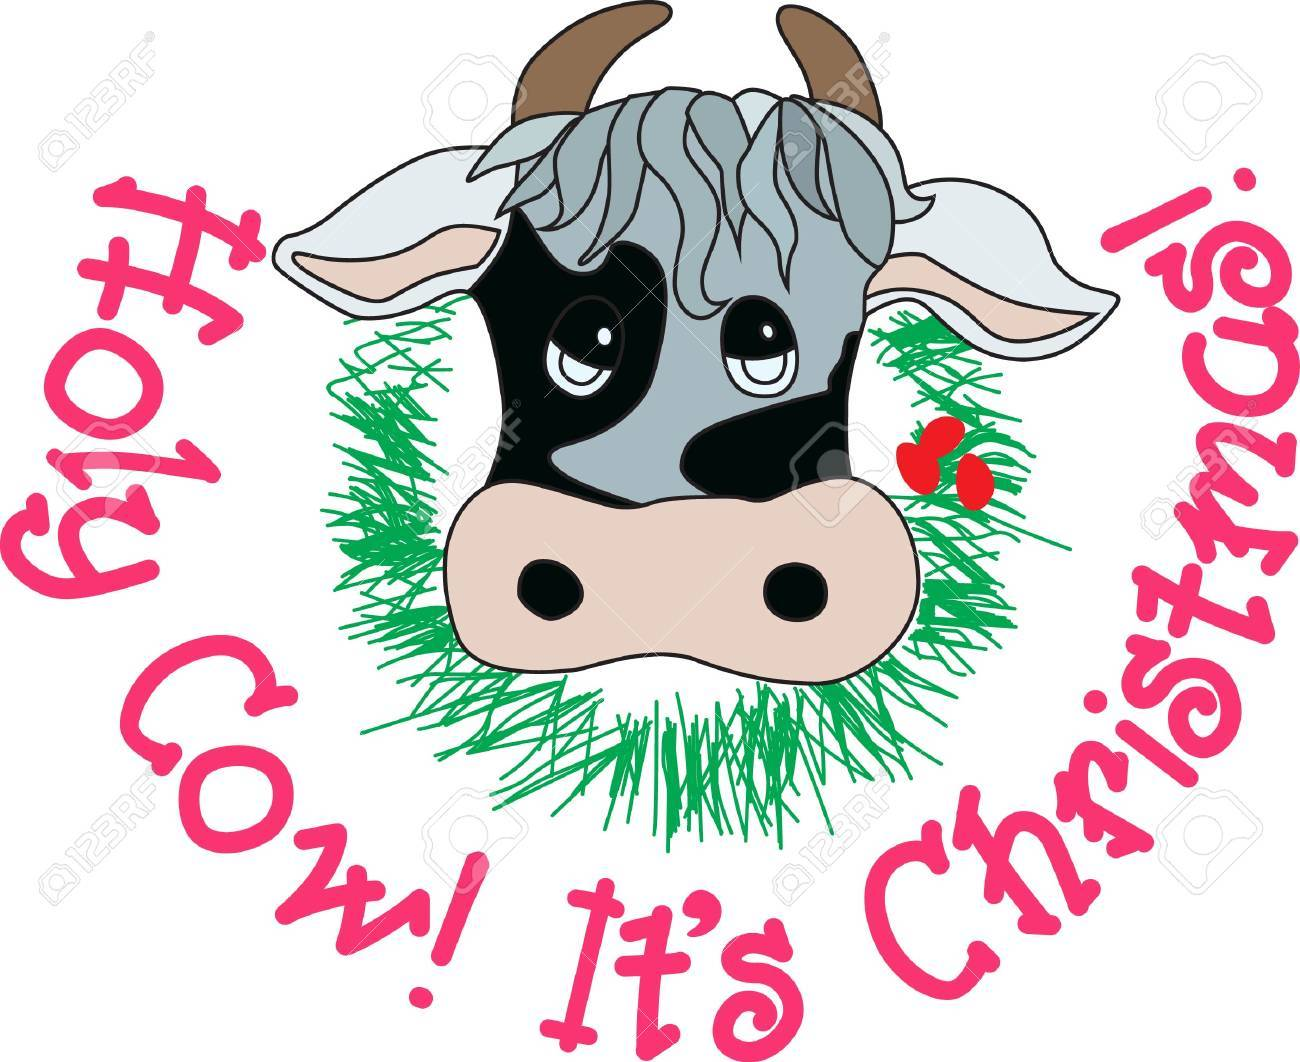 Christmas Cow.Add Some Country Charm To The Holidays With This Very Unique